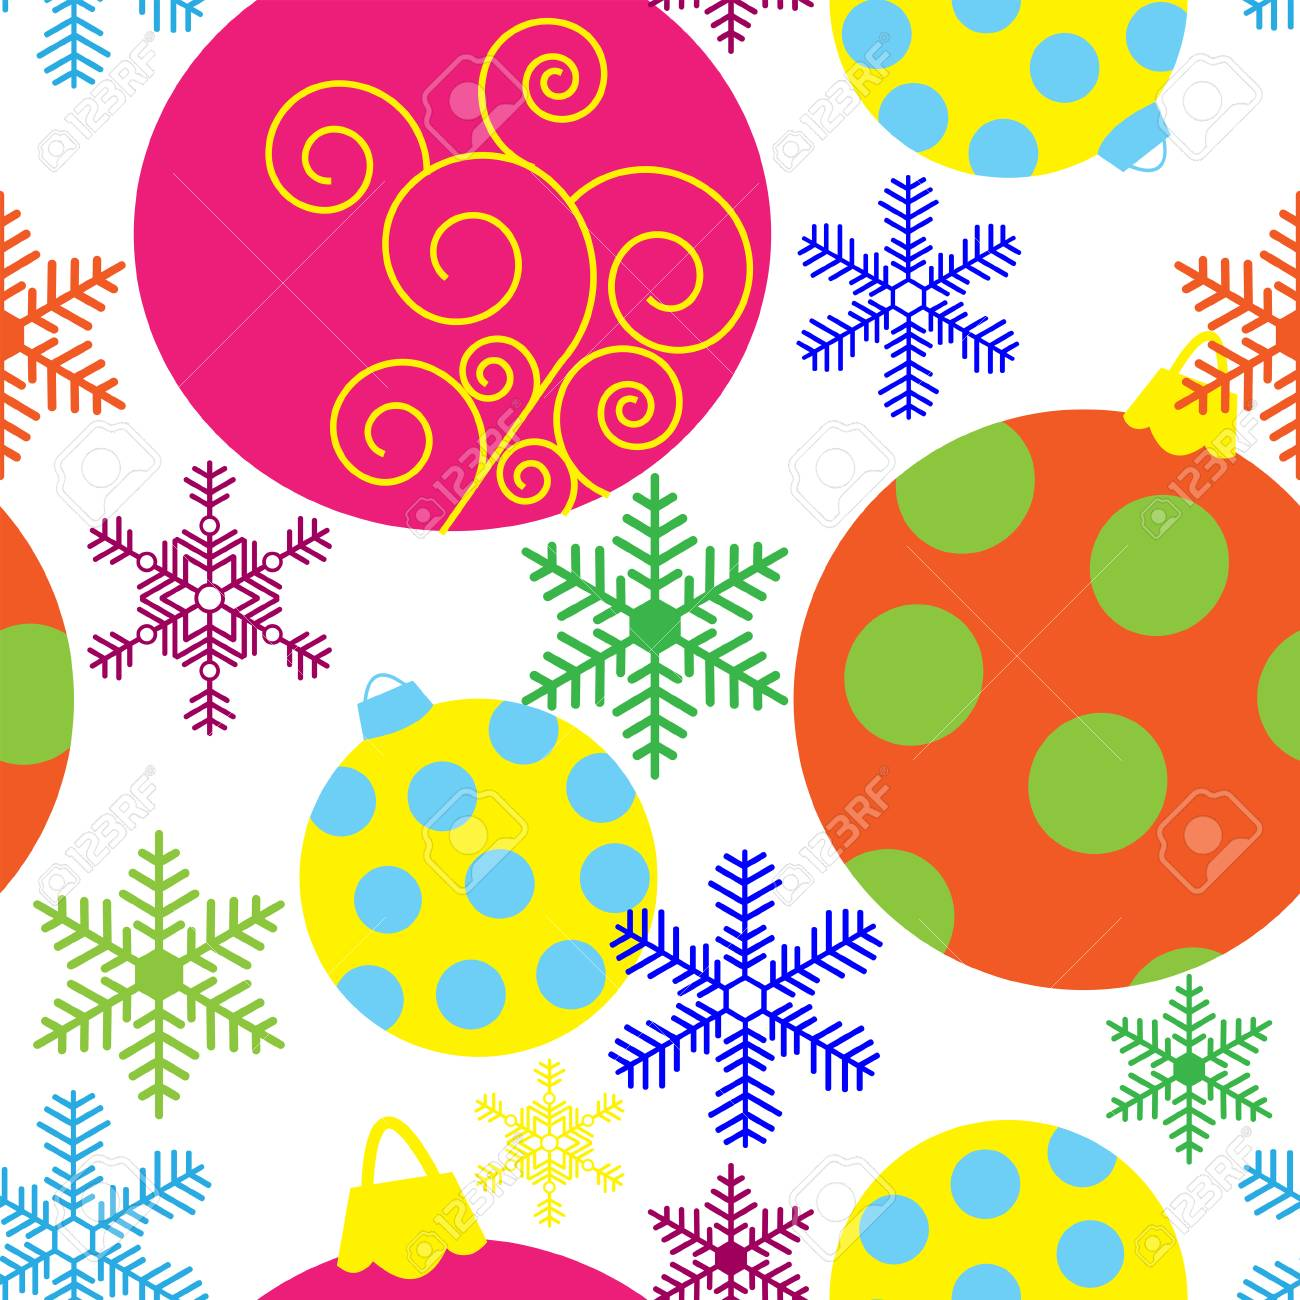 Greeting background with a Christmas theme Stock Vector - 22778207